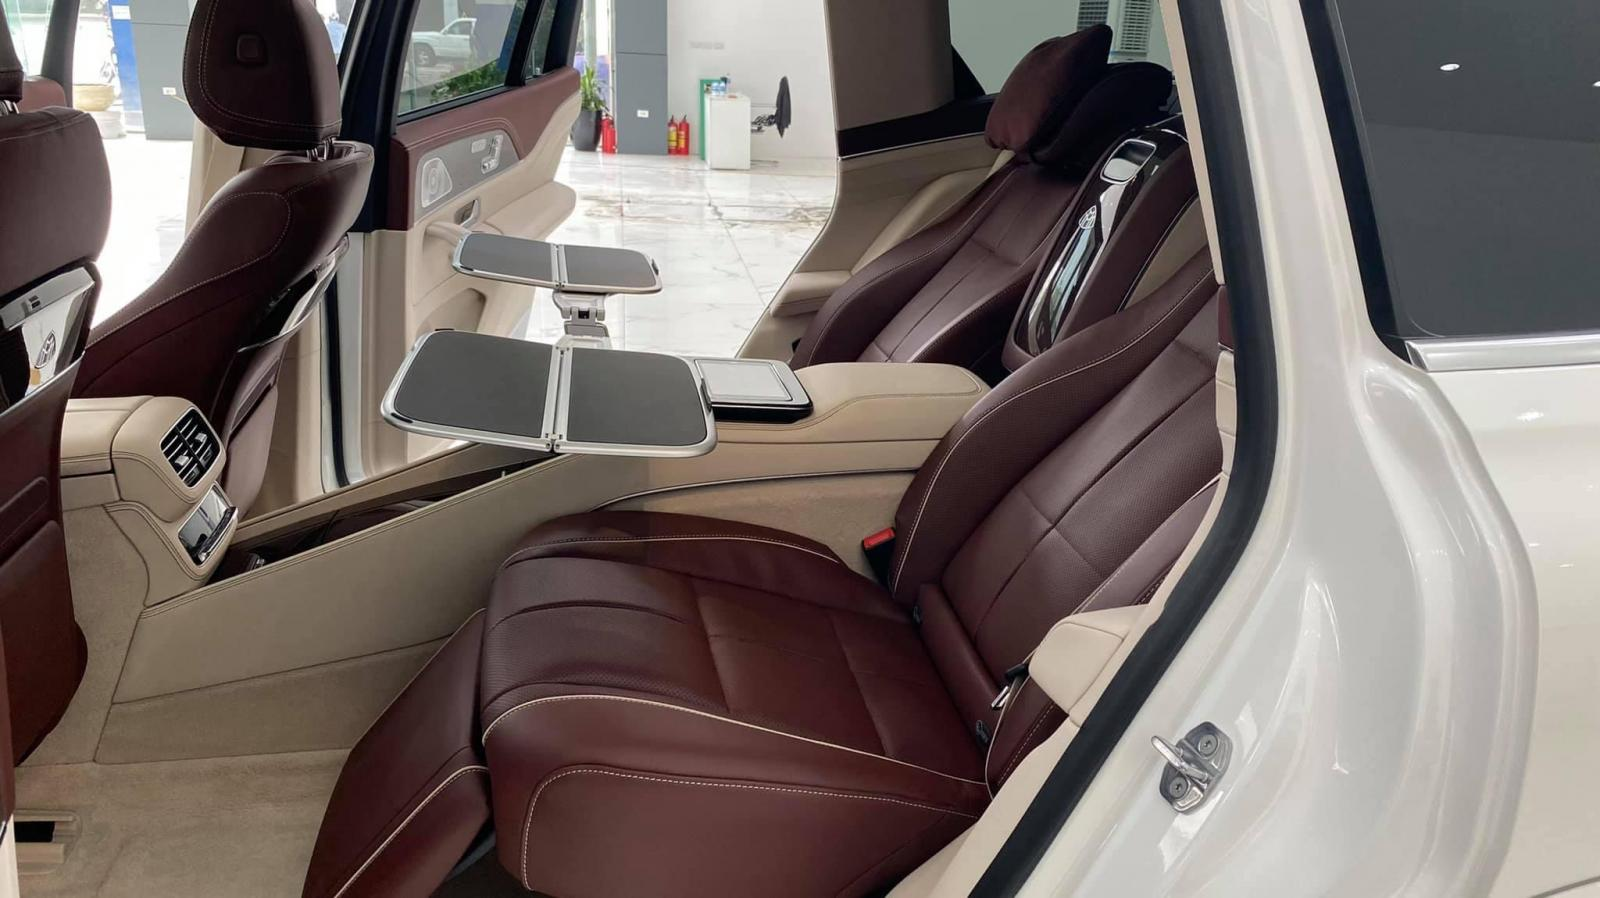 Bán Mercedes GLS 600 Maybach sản xuất 2021, mới 100%, xe giao ngay